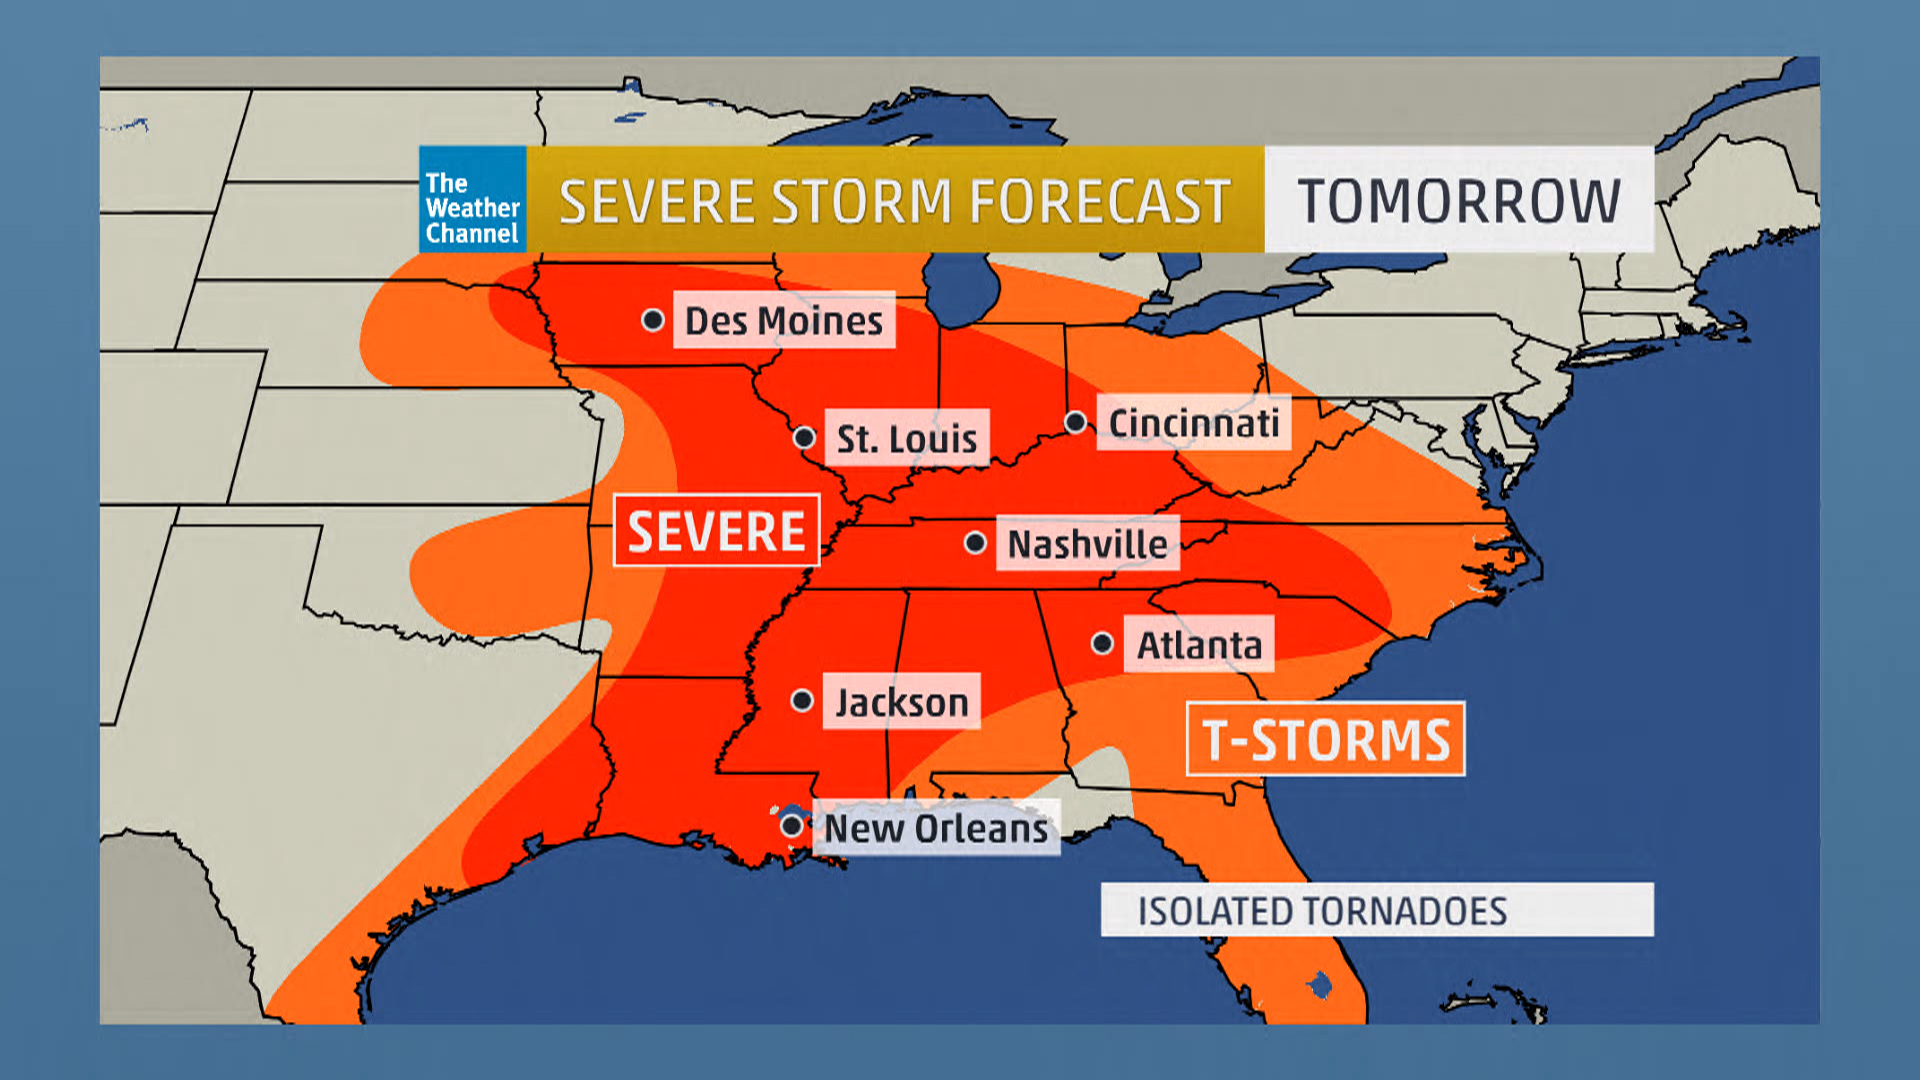 Get the Week's Severe Storm Forecast